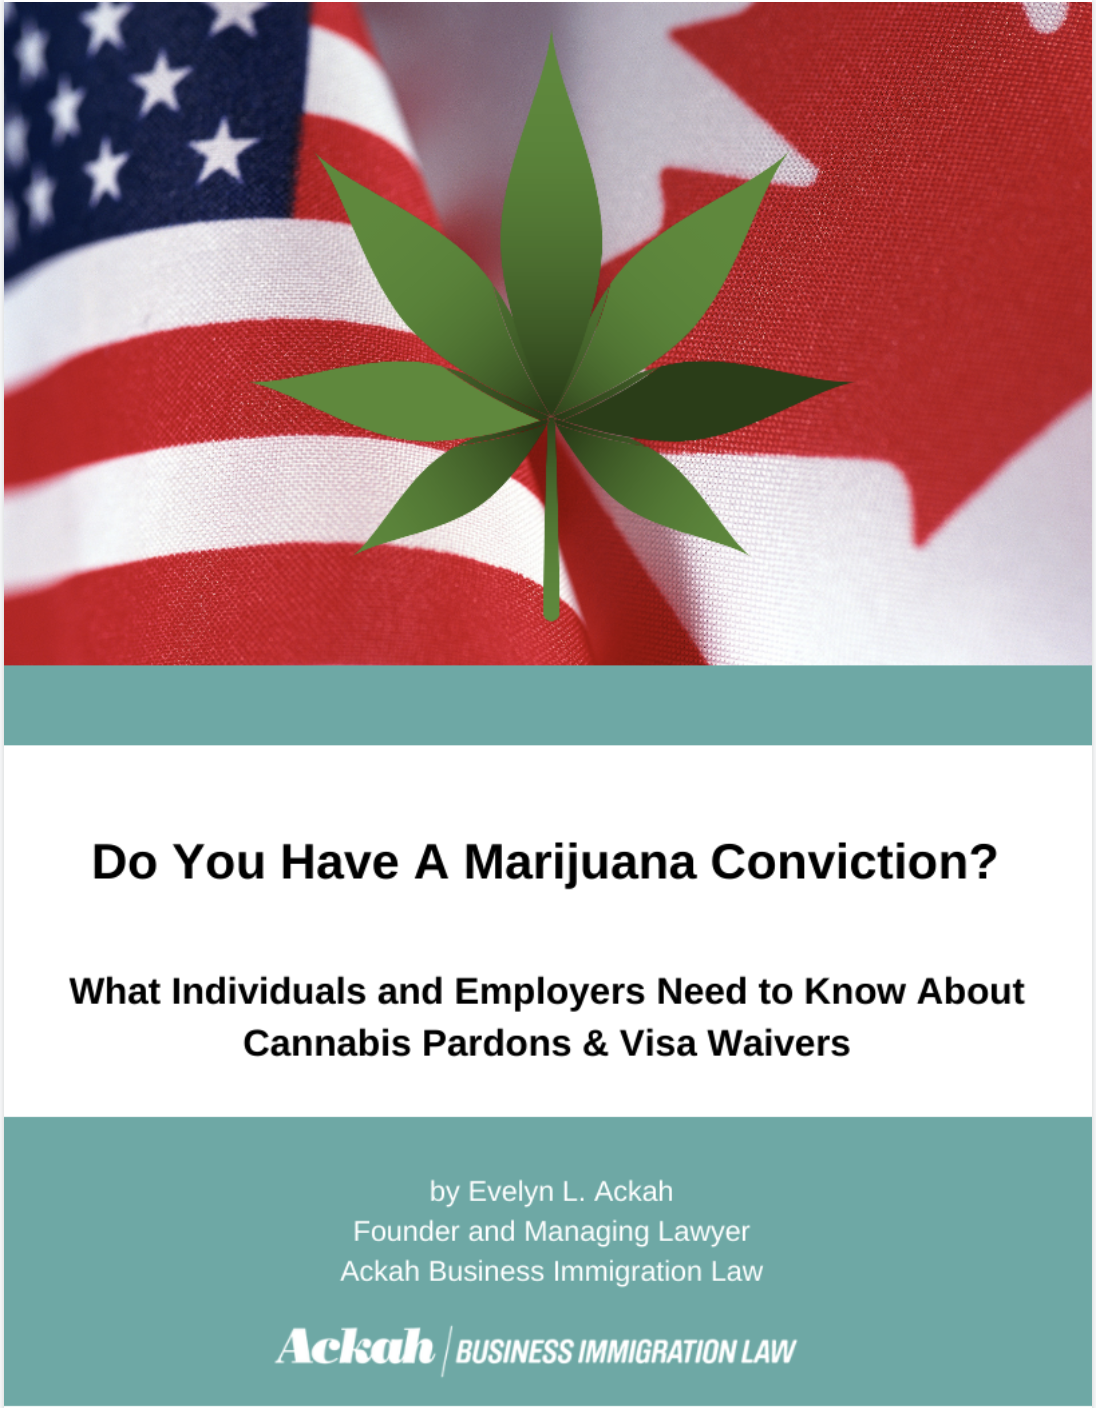 Do You Have A Marijuana Conviction? Cross Border Travel: What Individuals and Employers Need to Know About Cannabis Pardons & Visa Waivers Free eBook